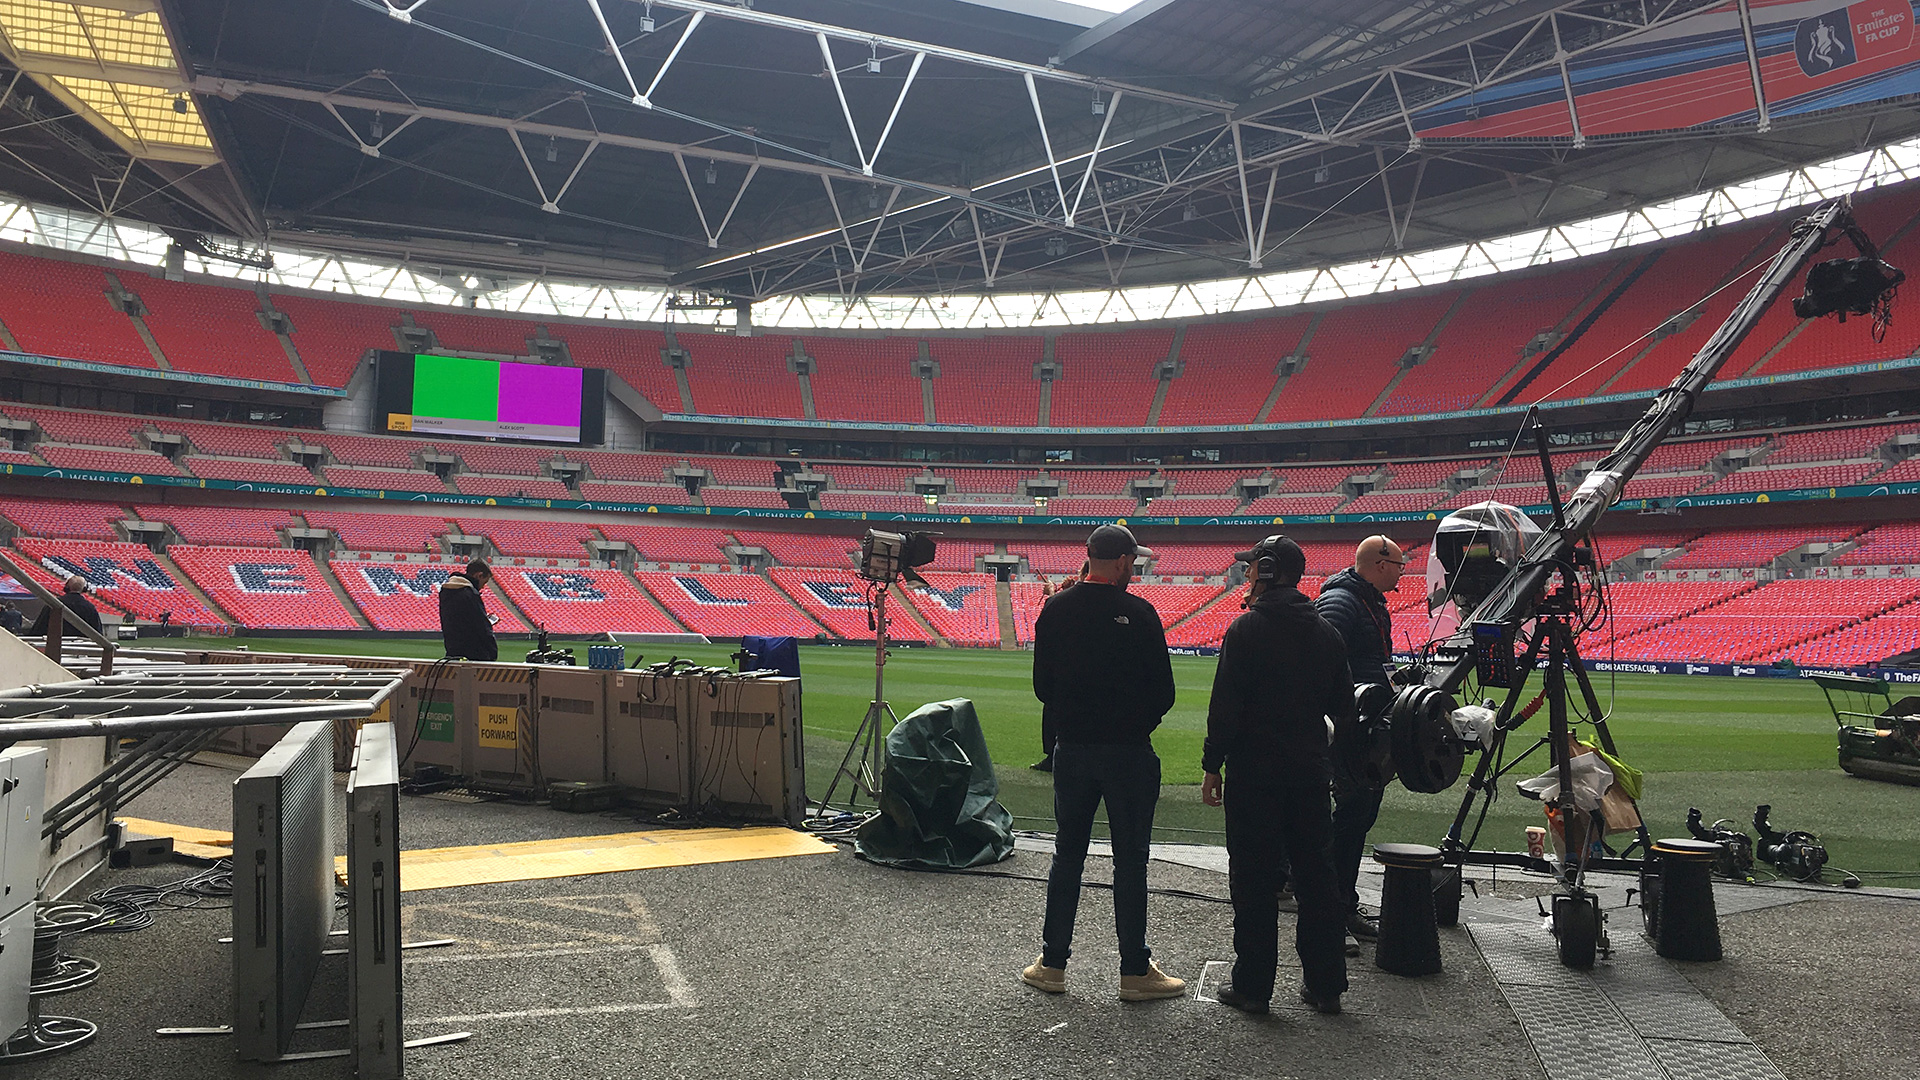 Setting up cameras in Wembley Stadium